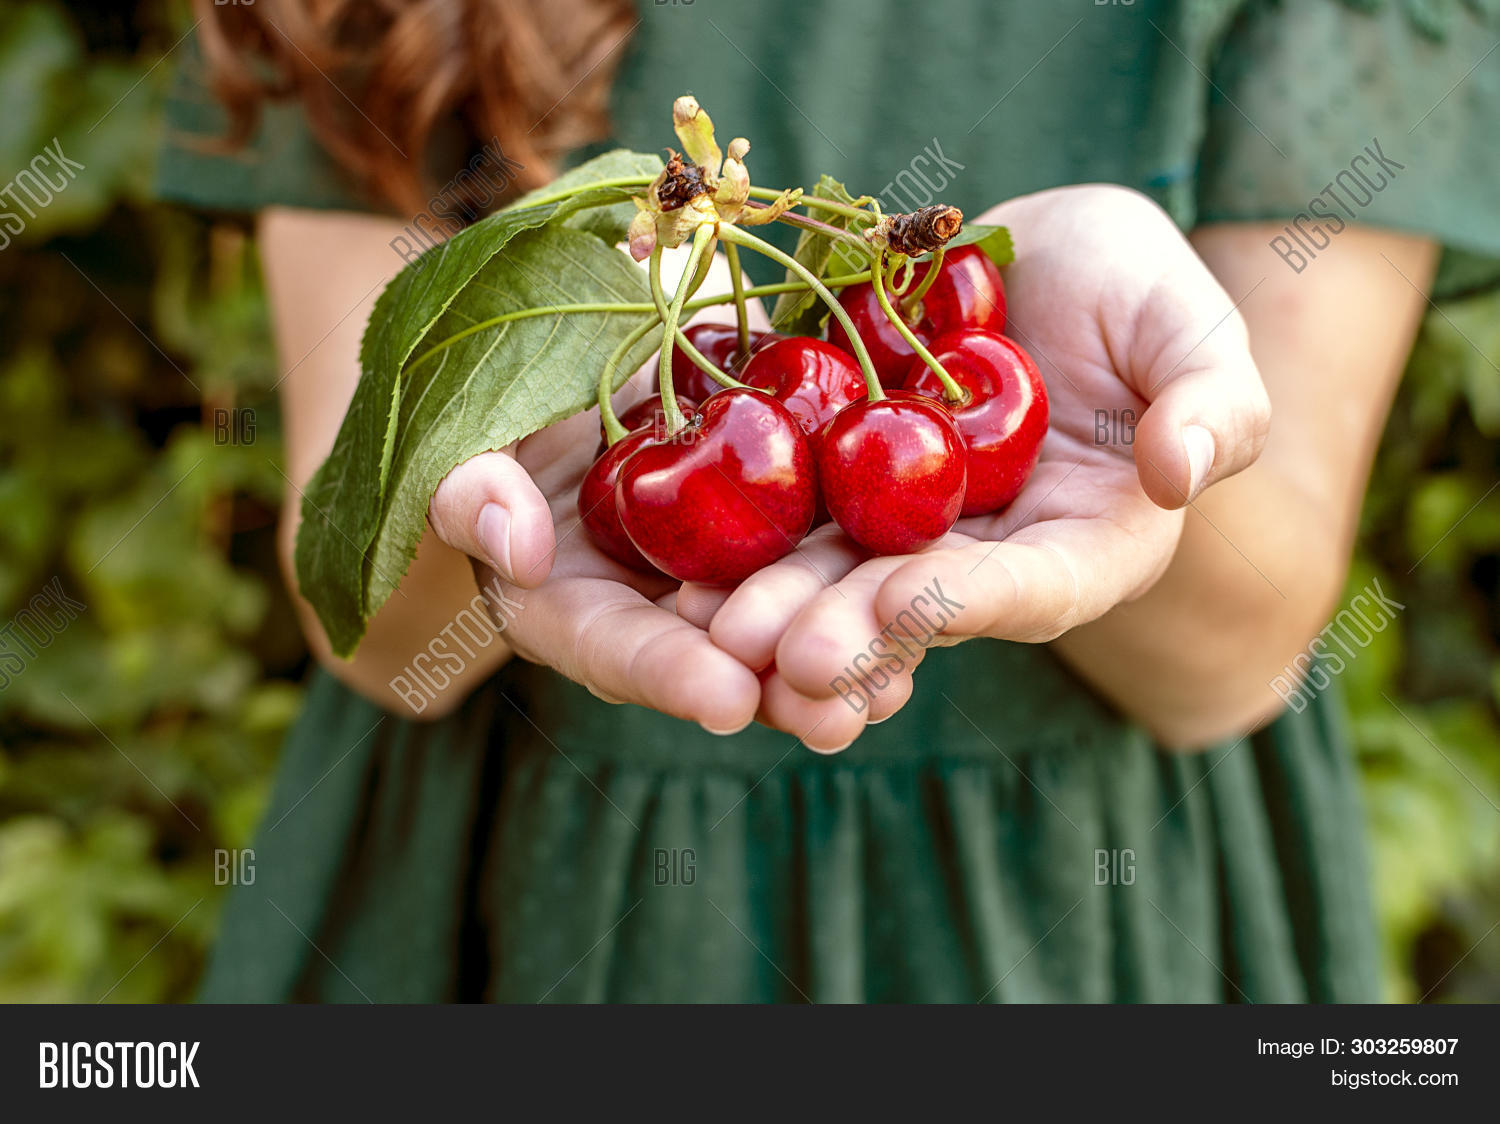 Isolated young woman with big red cherries in her hands. Cherry with leaf and stalk. Cherries with leaves and stalks. One person on the natural green background. Big variety of cherries. Varieties: Frisco, red Giant, bloom cherries. Good harvest of